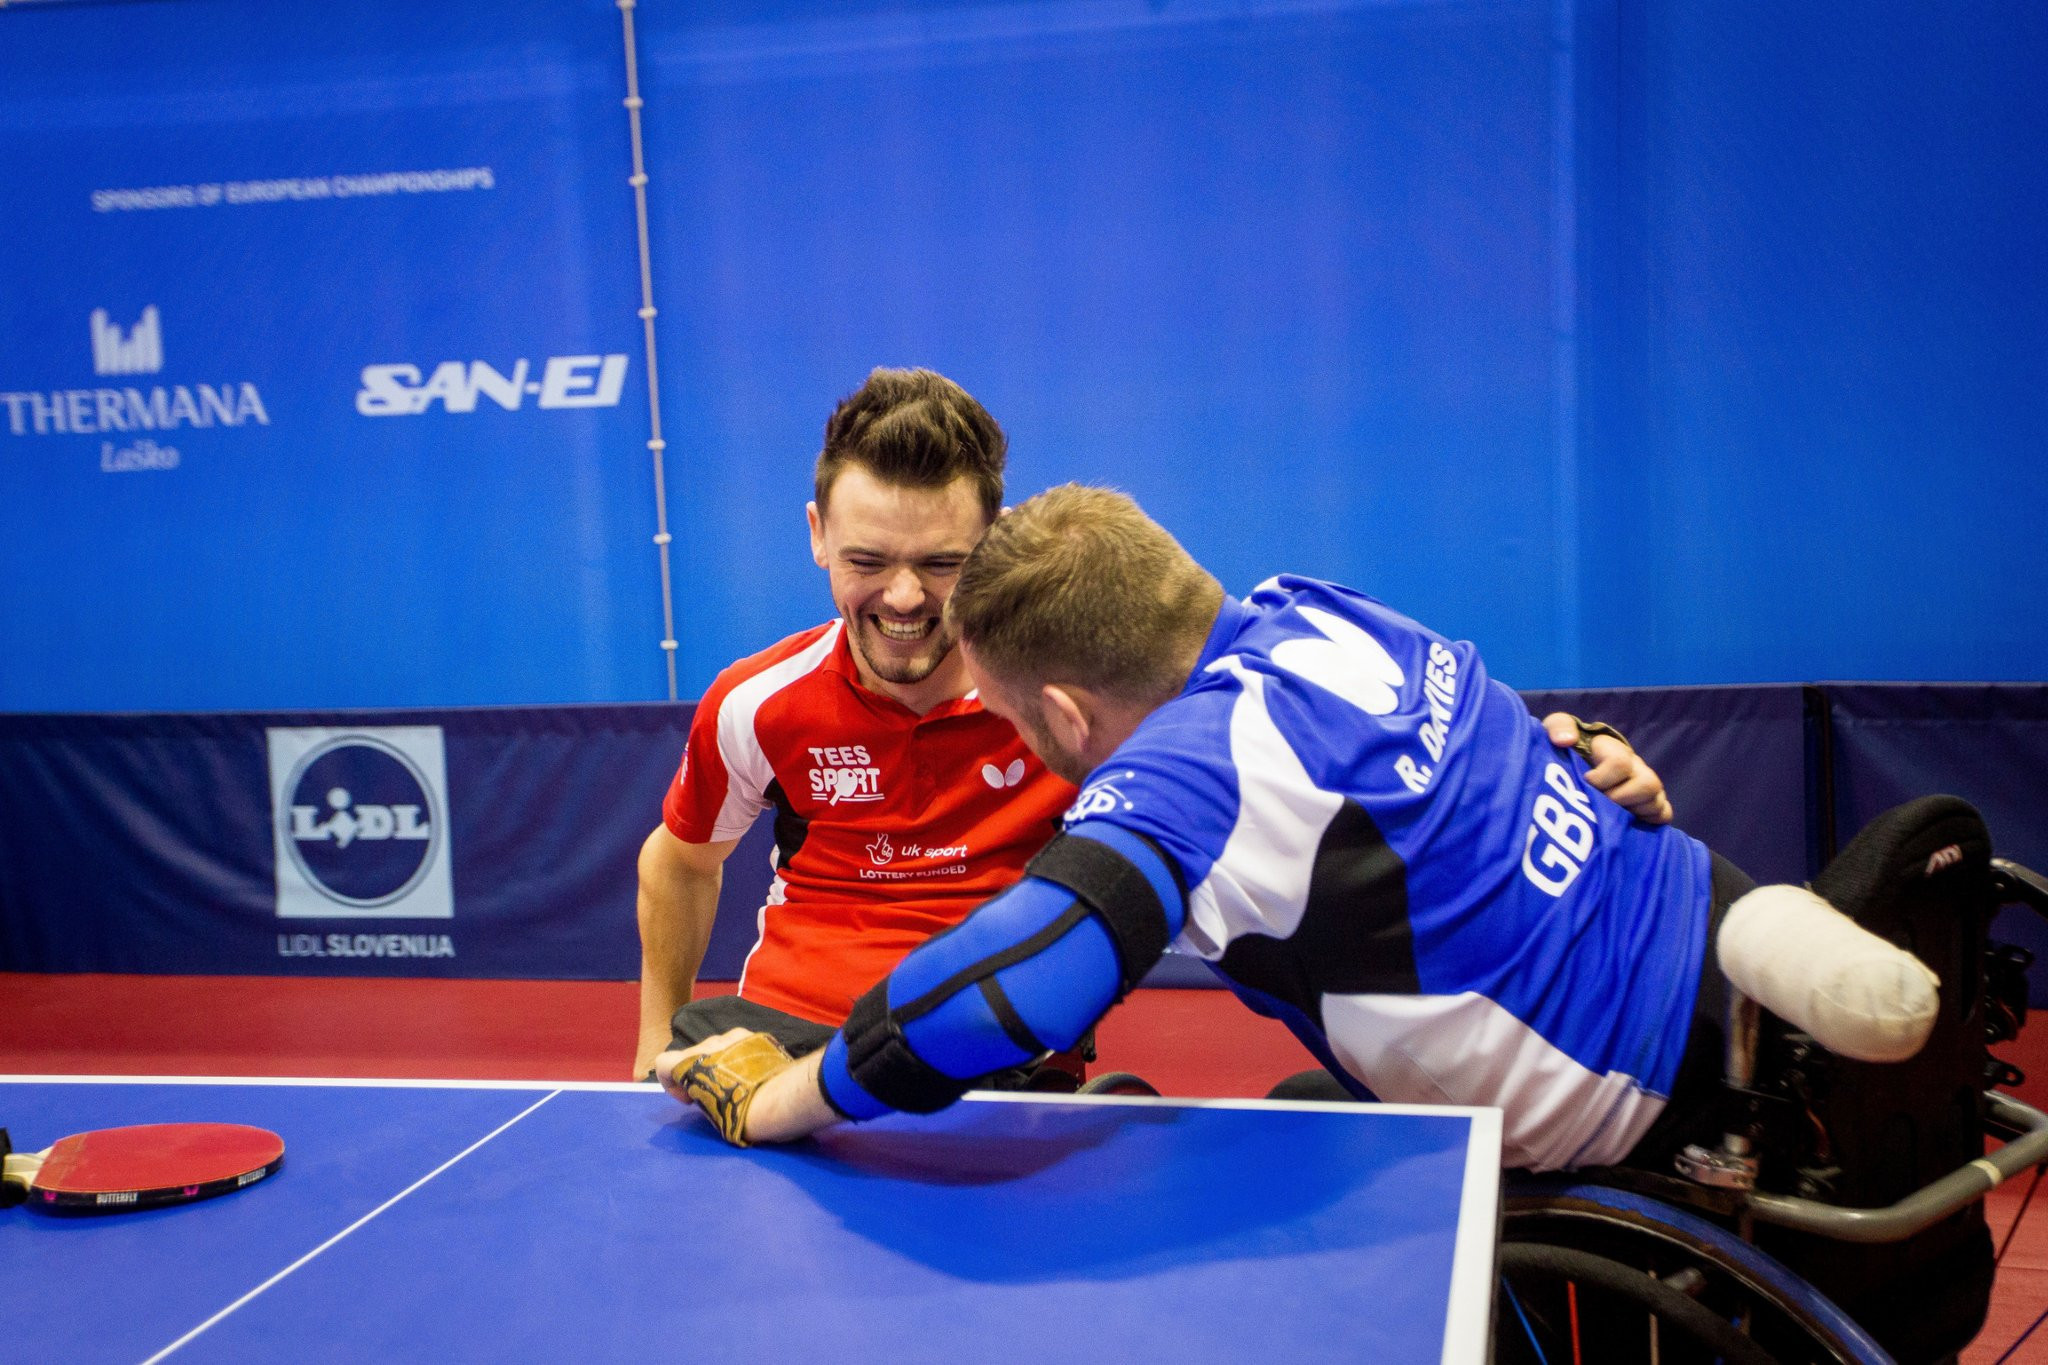 Davies beats two compatriots to European Para-Table Tennis Championships gold